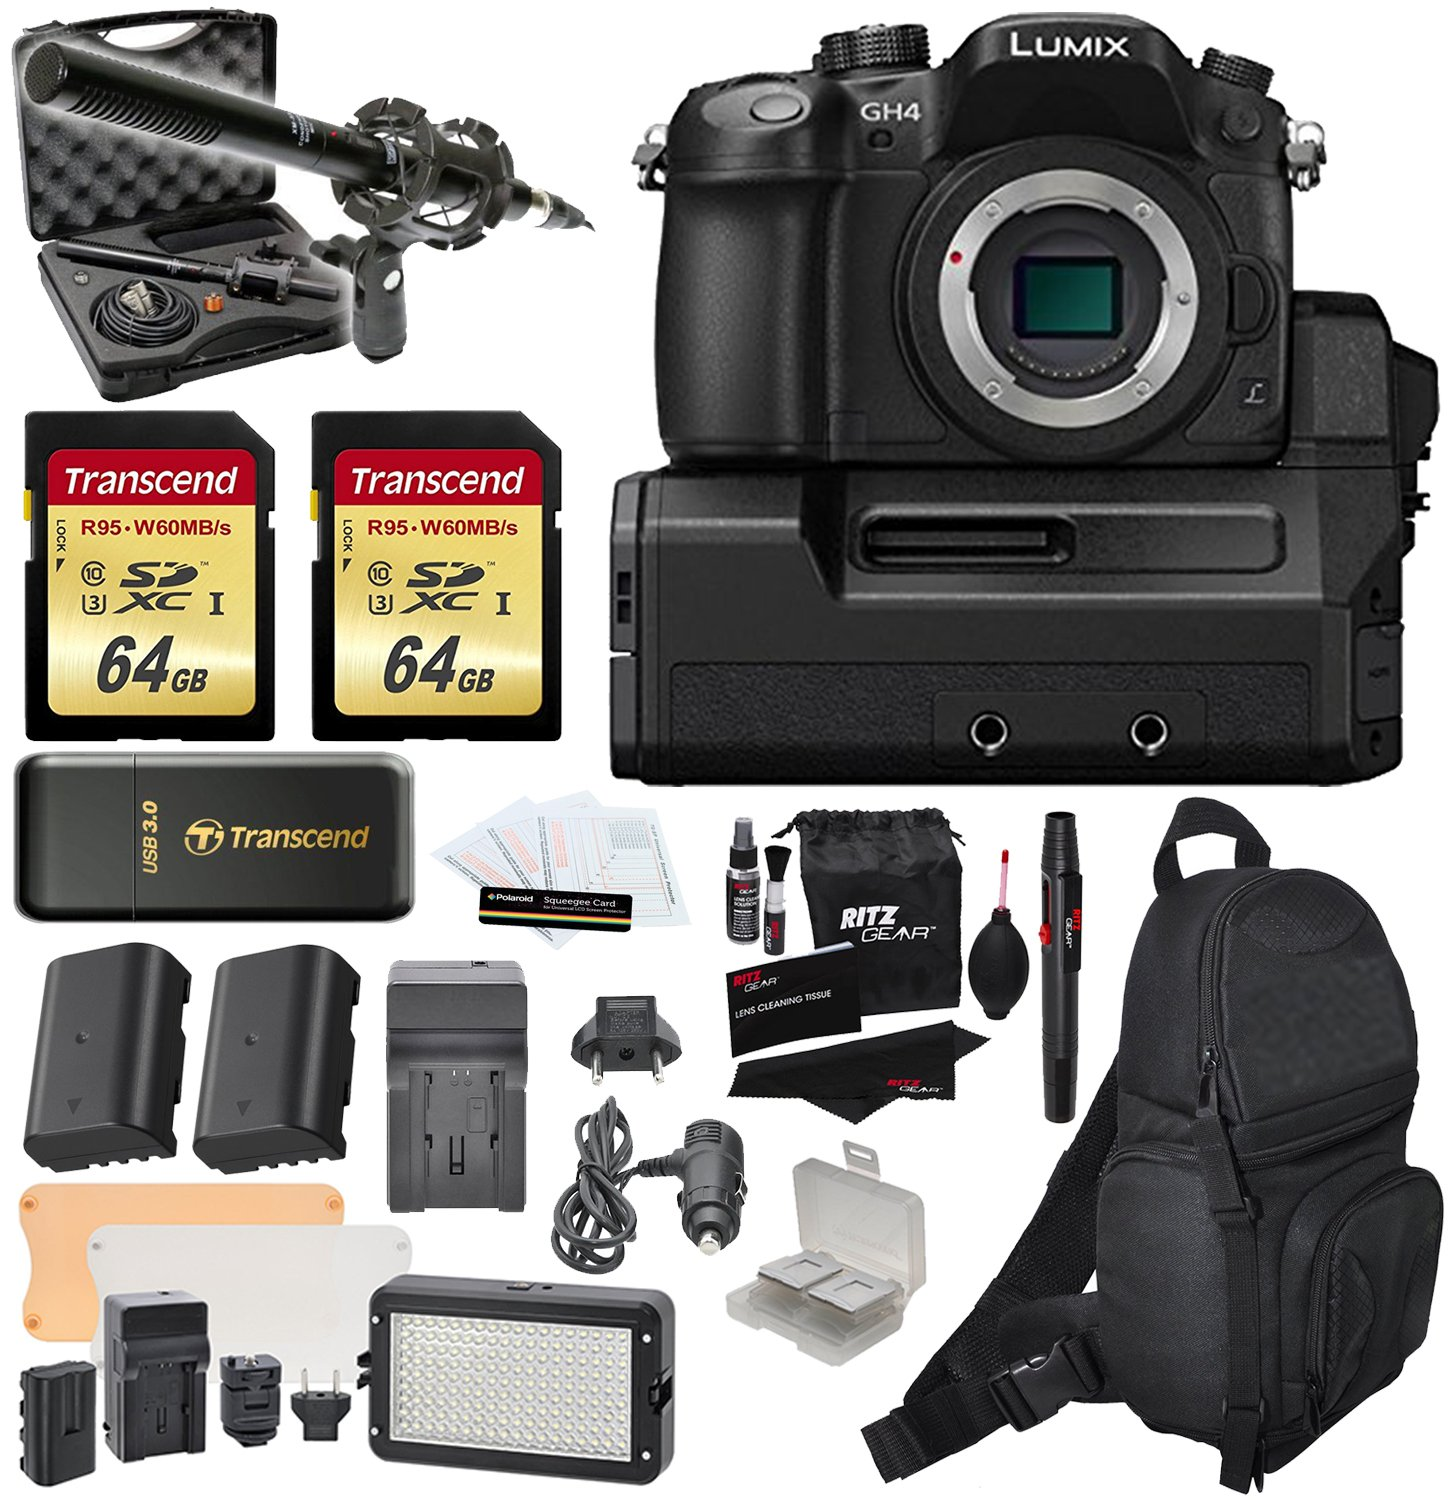 Panasonic DMC-GH4-YAGH Lumix GH4 4K Micro Four Thirds Digital Camera Video Interface Compact System + Vidpro XM-55 Broadcast Unidirectional Condenser Microphone + 2 Transcend 64 GB + Extra Accessories